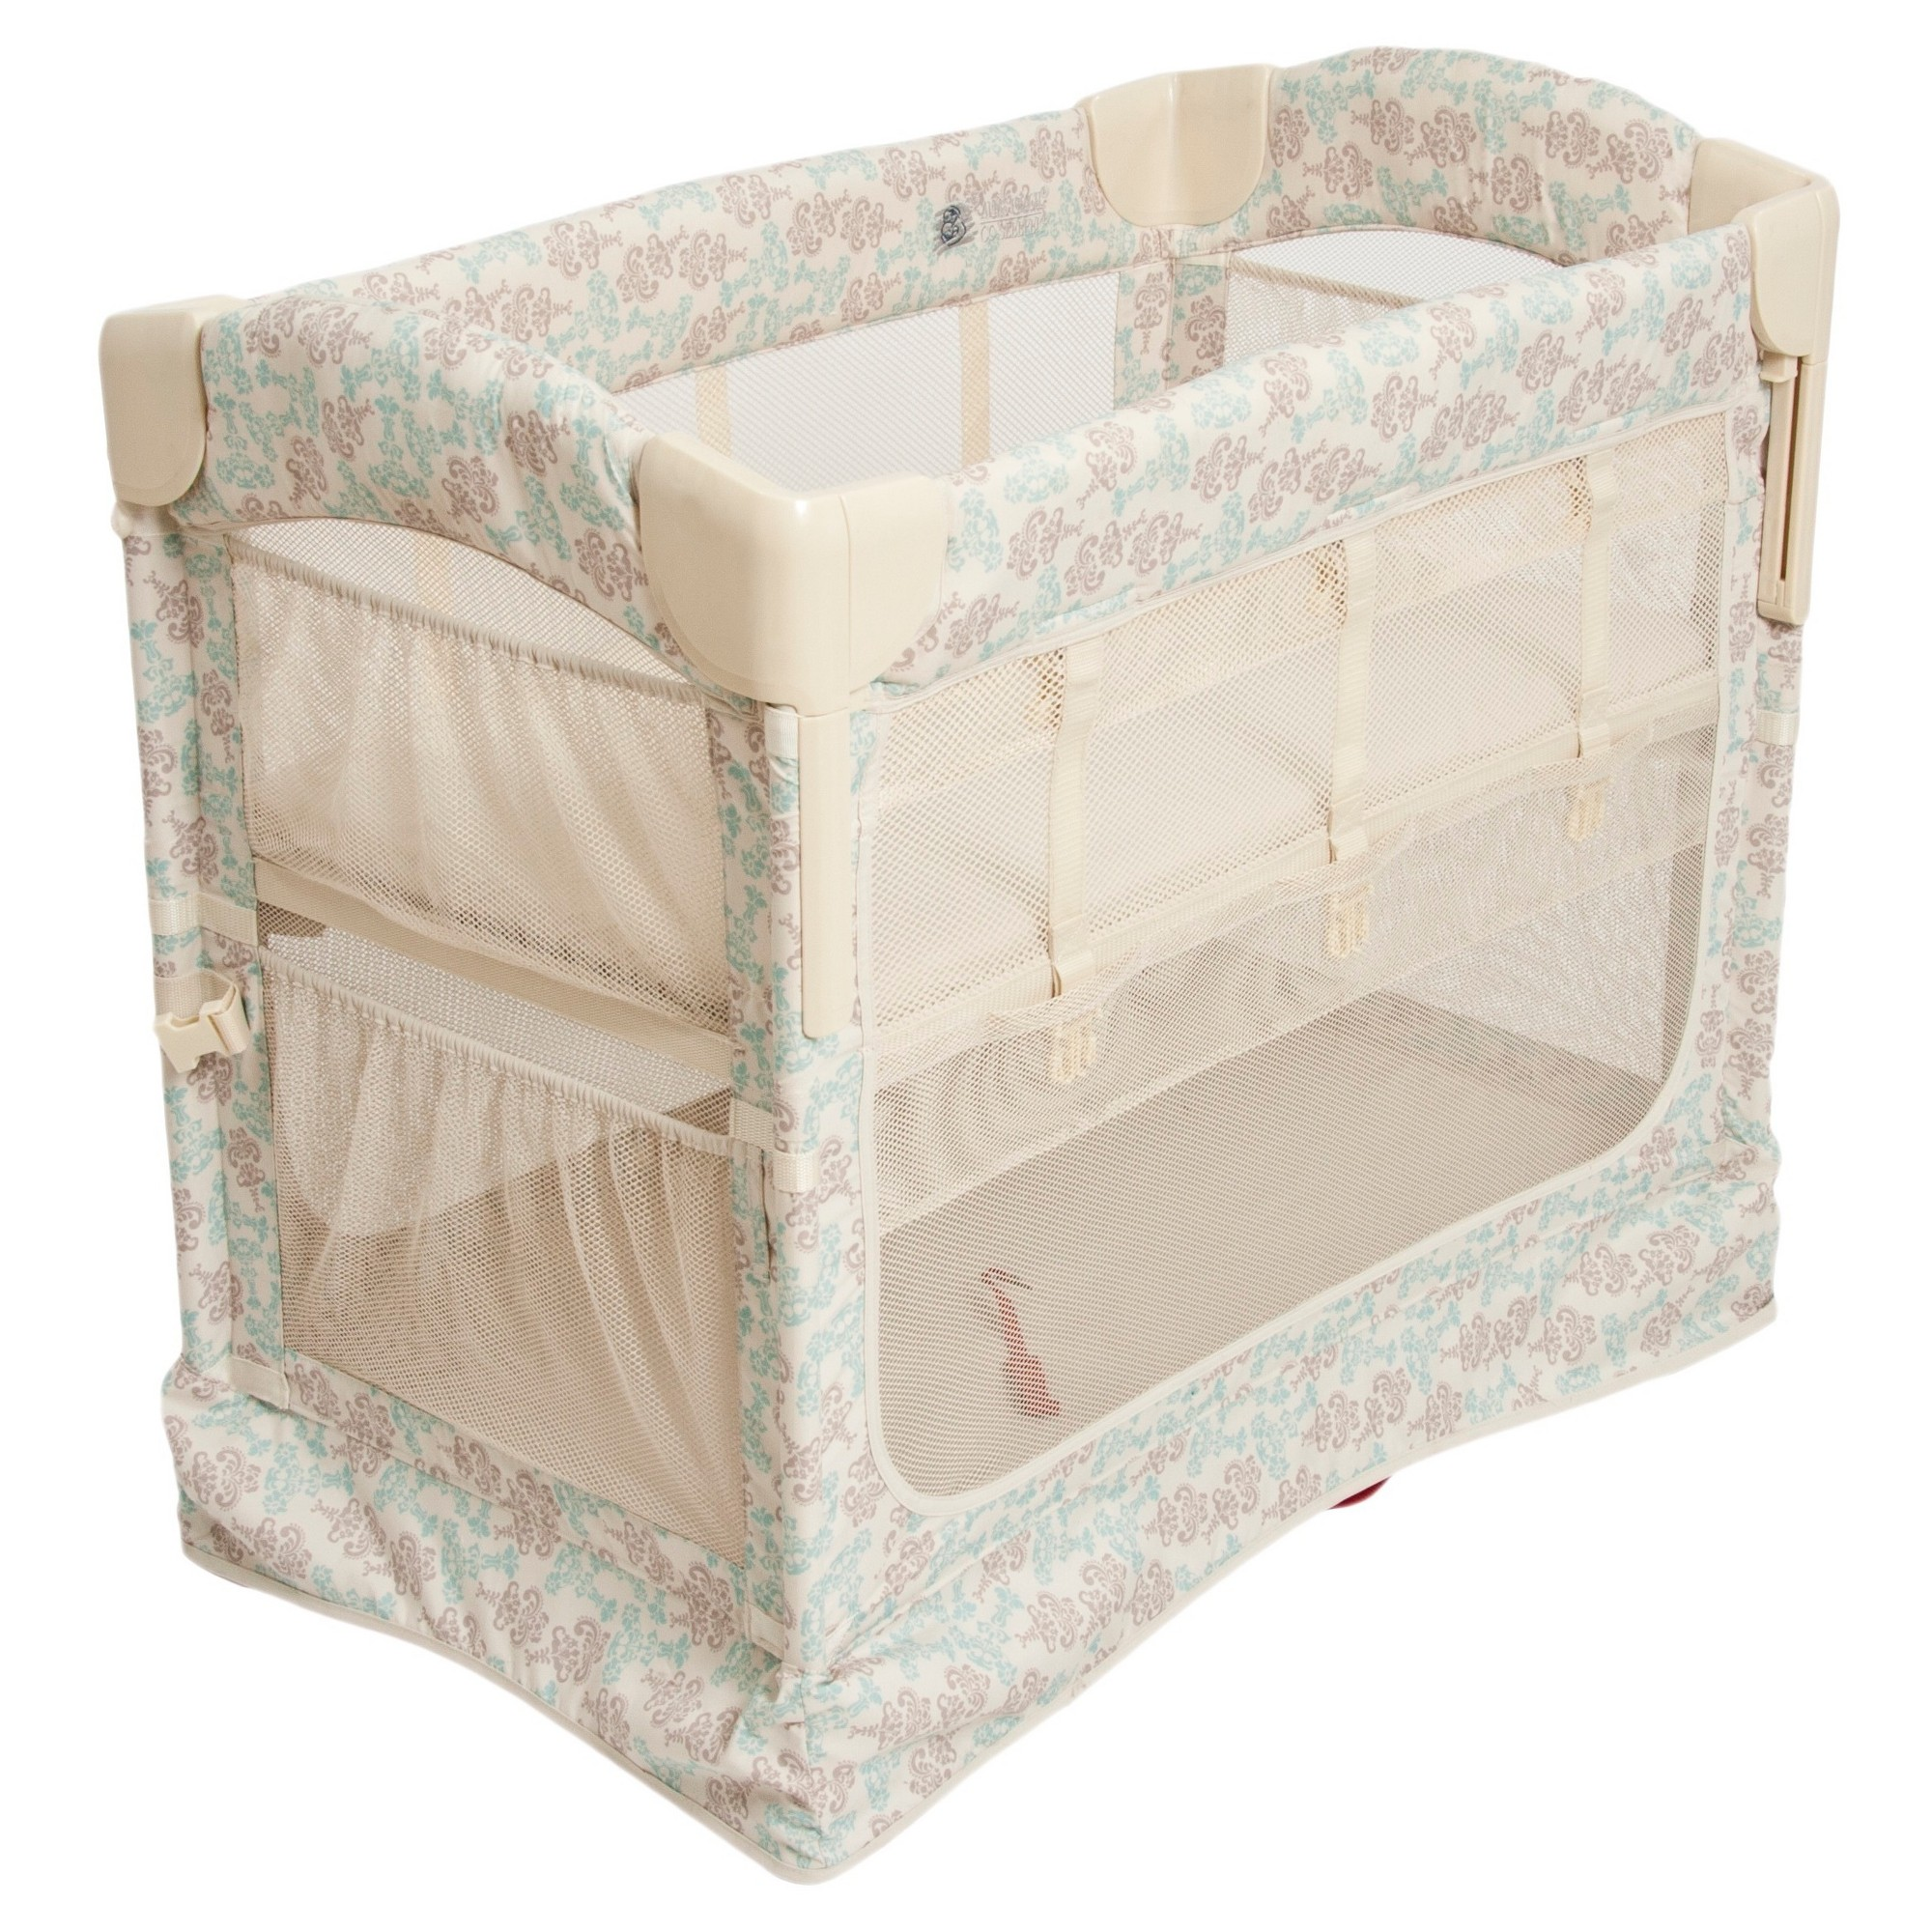 Arm's Reach Mini 2in1 Ezee CoSleeper Damask